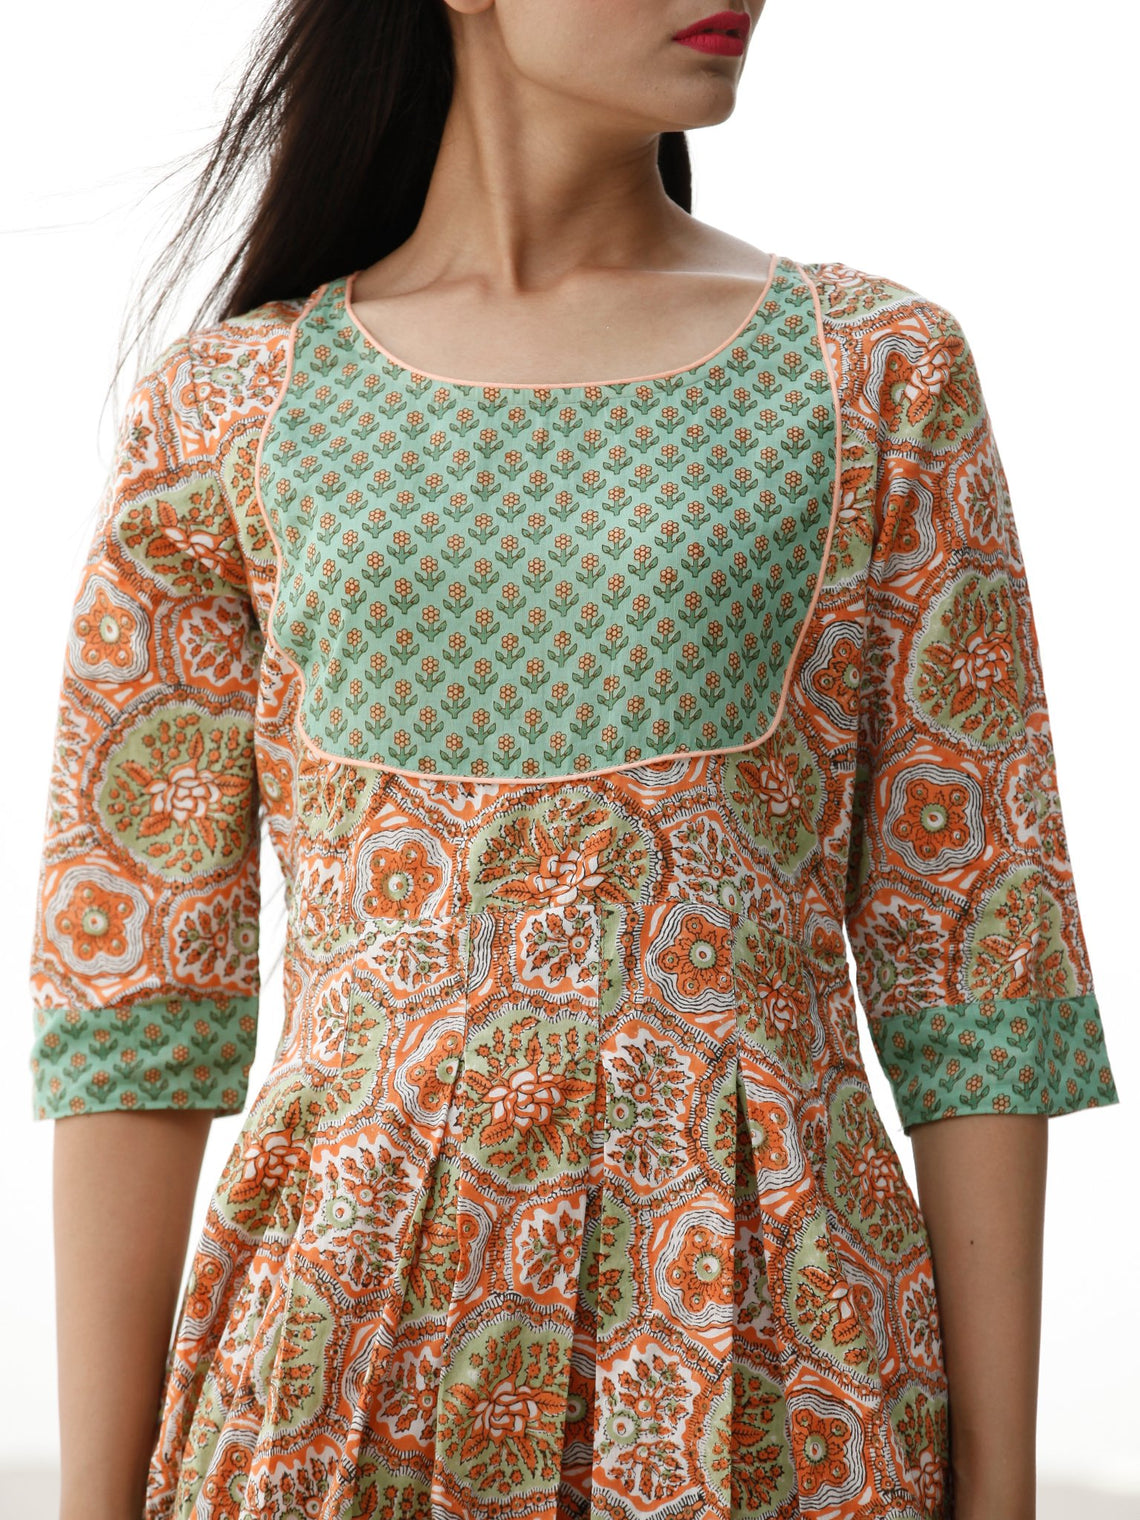 Pastel Wonders  - Block Printed Cotton Dress  - D70F1917